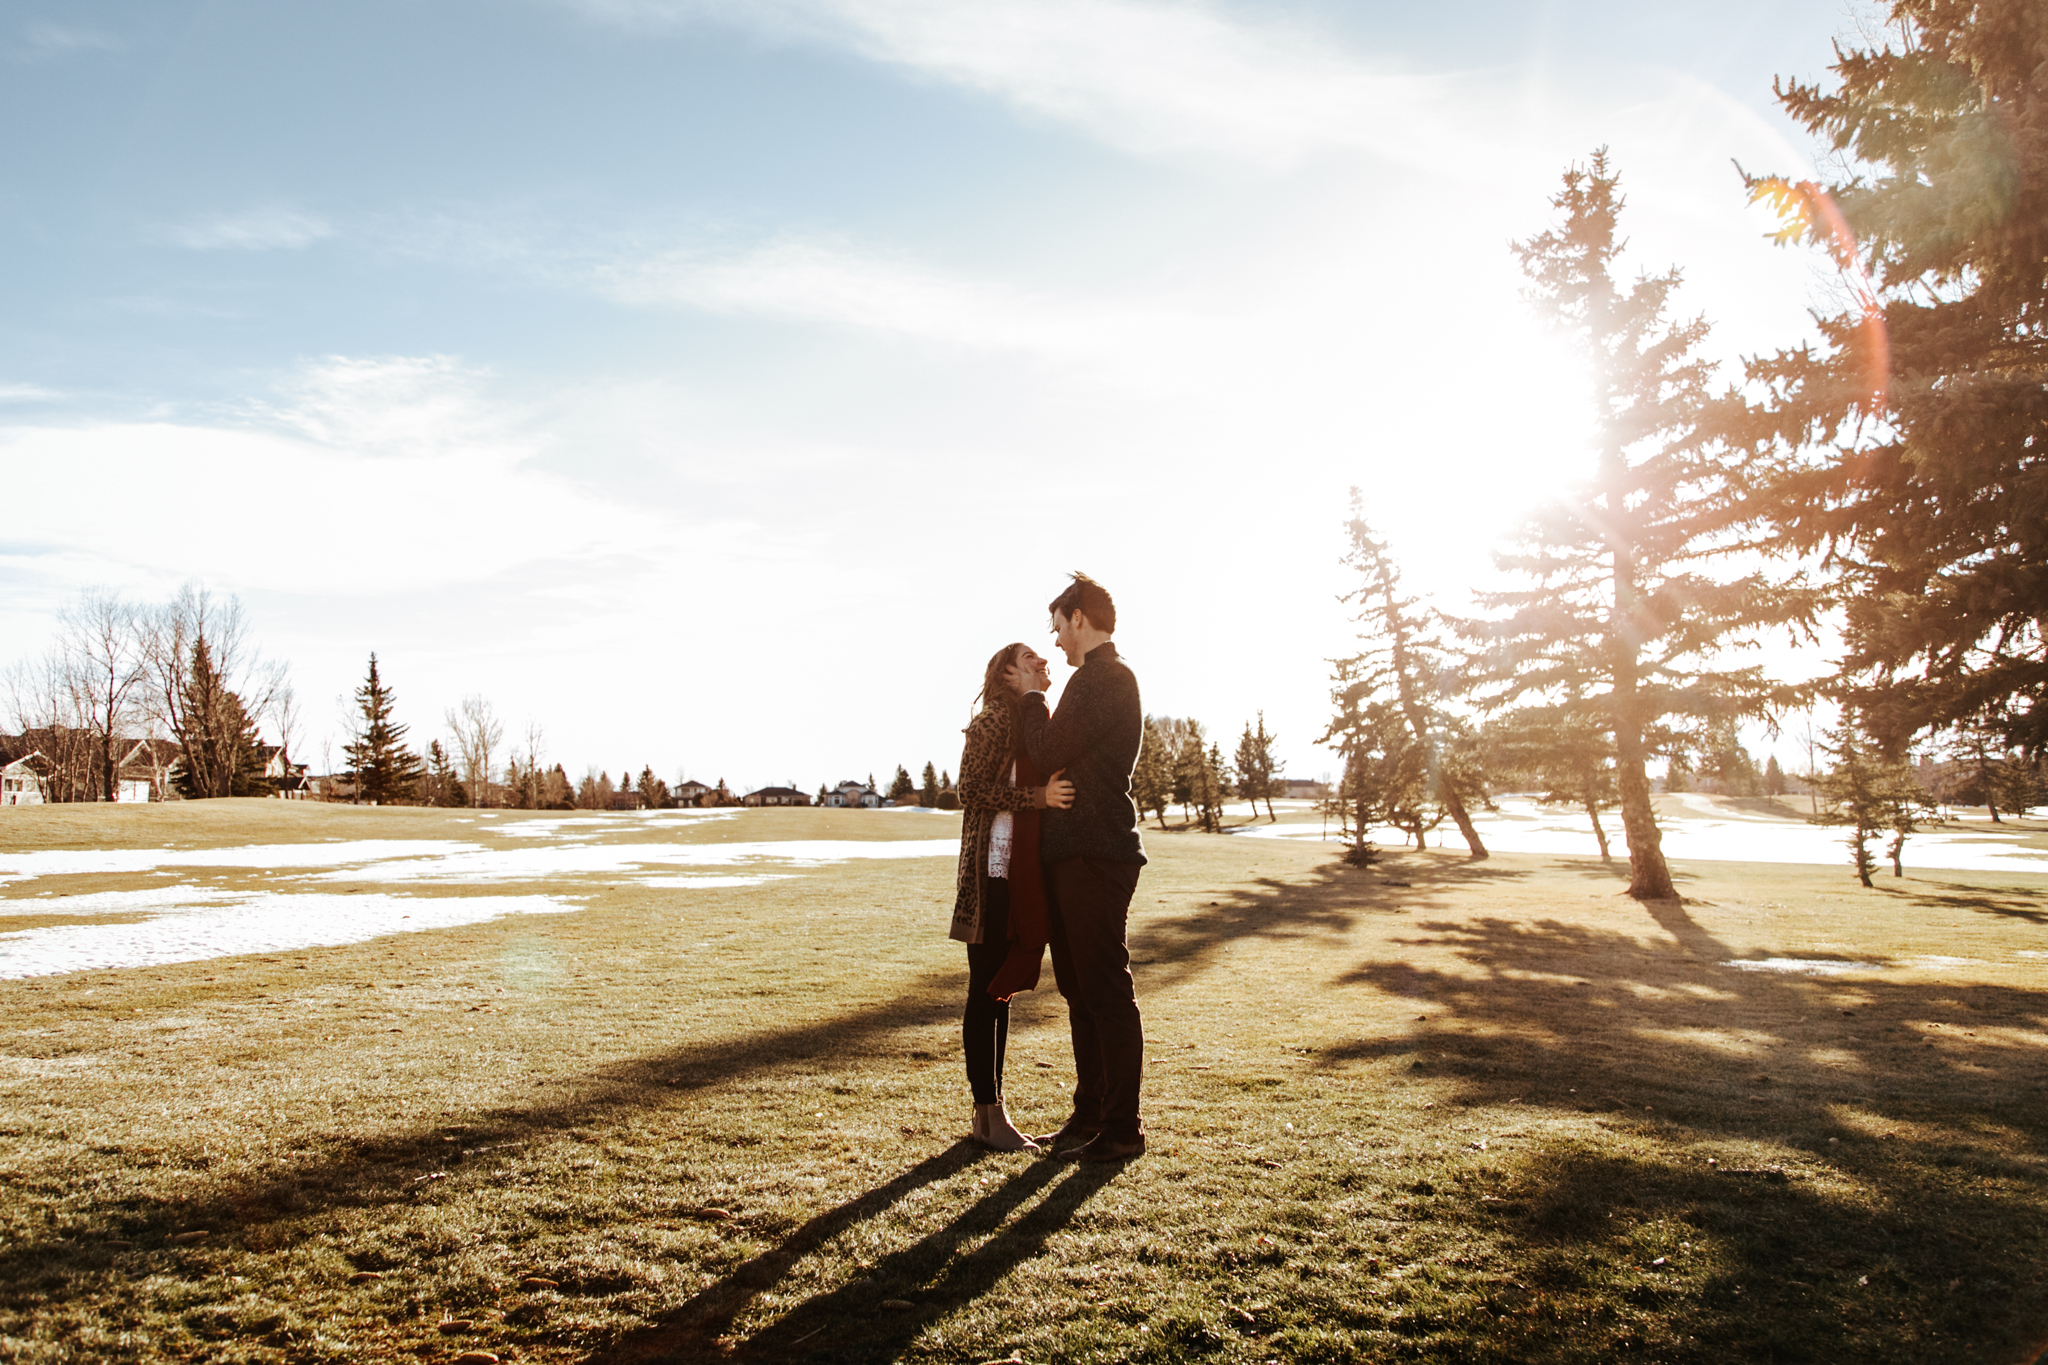 lethbridge-photographer-love-and-be-loved-photography-winter-engagement-emma-tanner-picture-image-photo-41.jpg